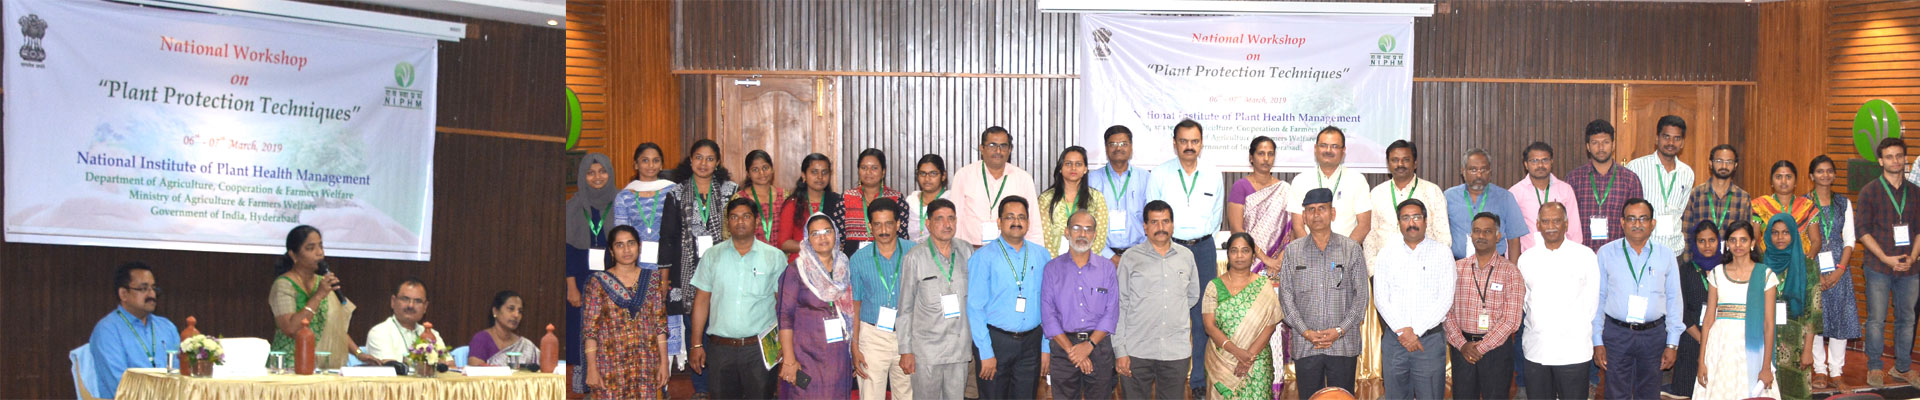 National Workshop on Plant Protection Techniques